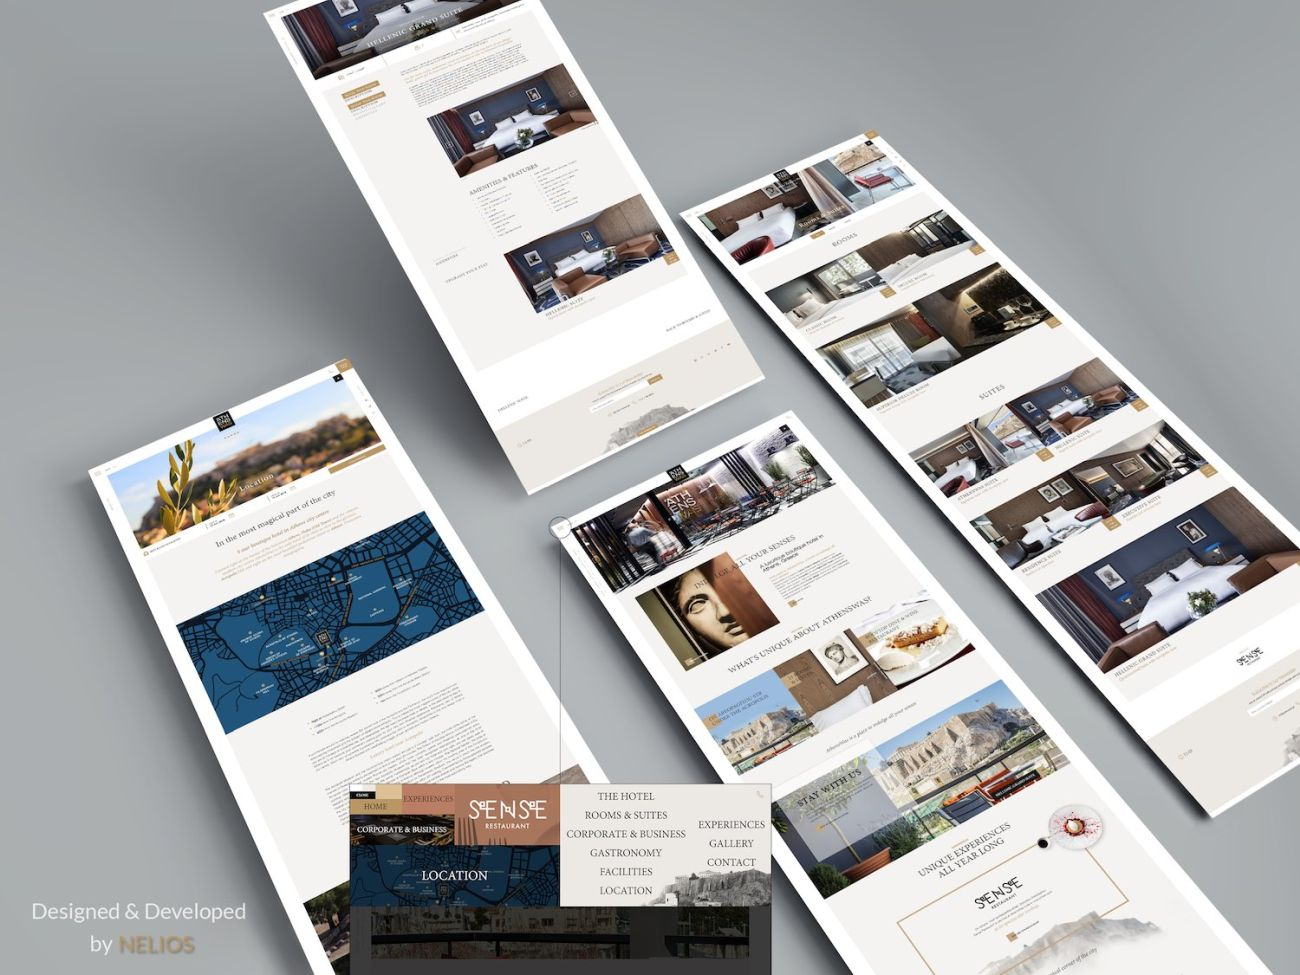 A tailor made hotel website designed by Nelios.